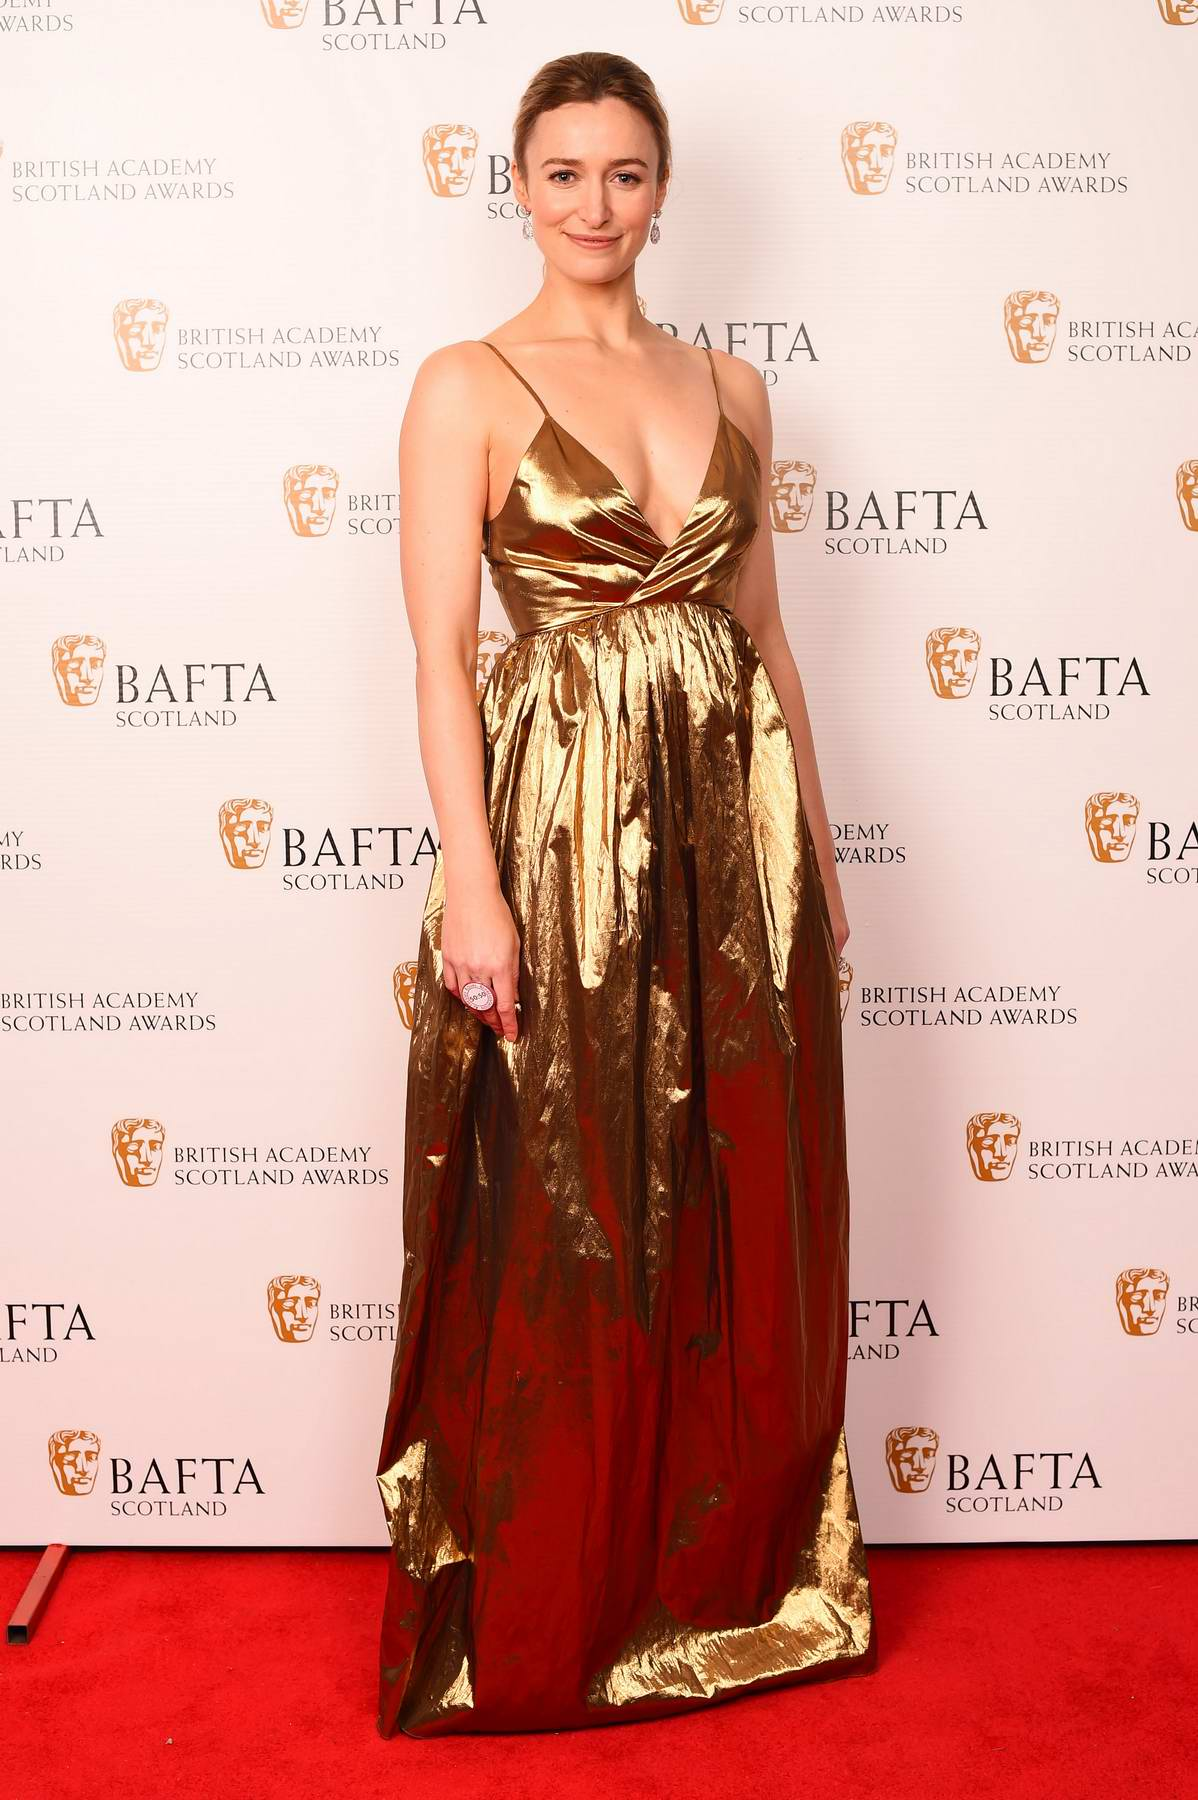 Deirdre Mullins at the British Academy Scotland Awards in Glasgow, Scotland